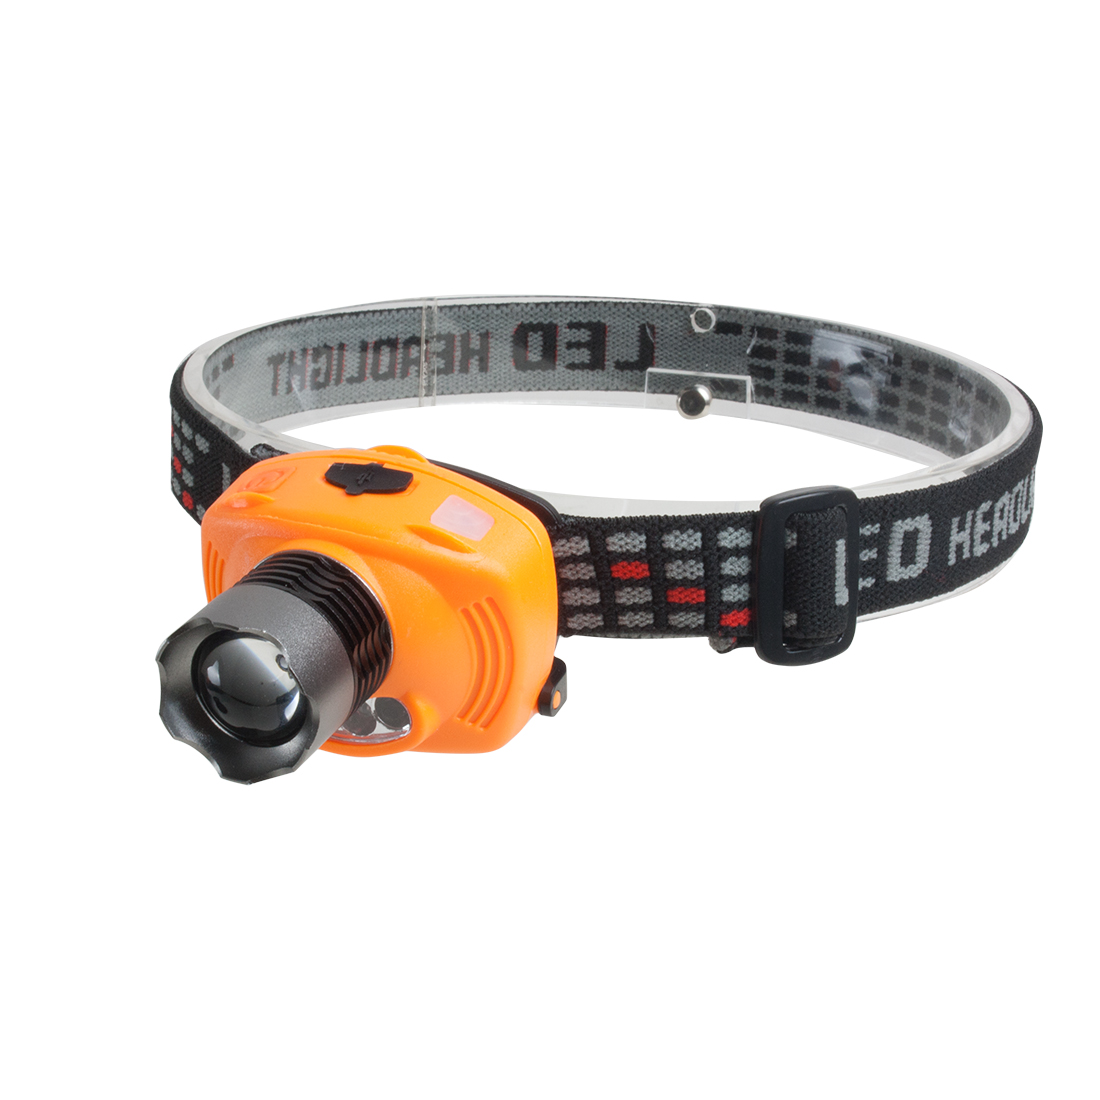 Rechargeable Head Light Zoomable Infrared Sensor LED Headlamp Biking Camp Torch lamp